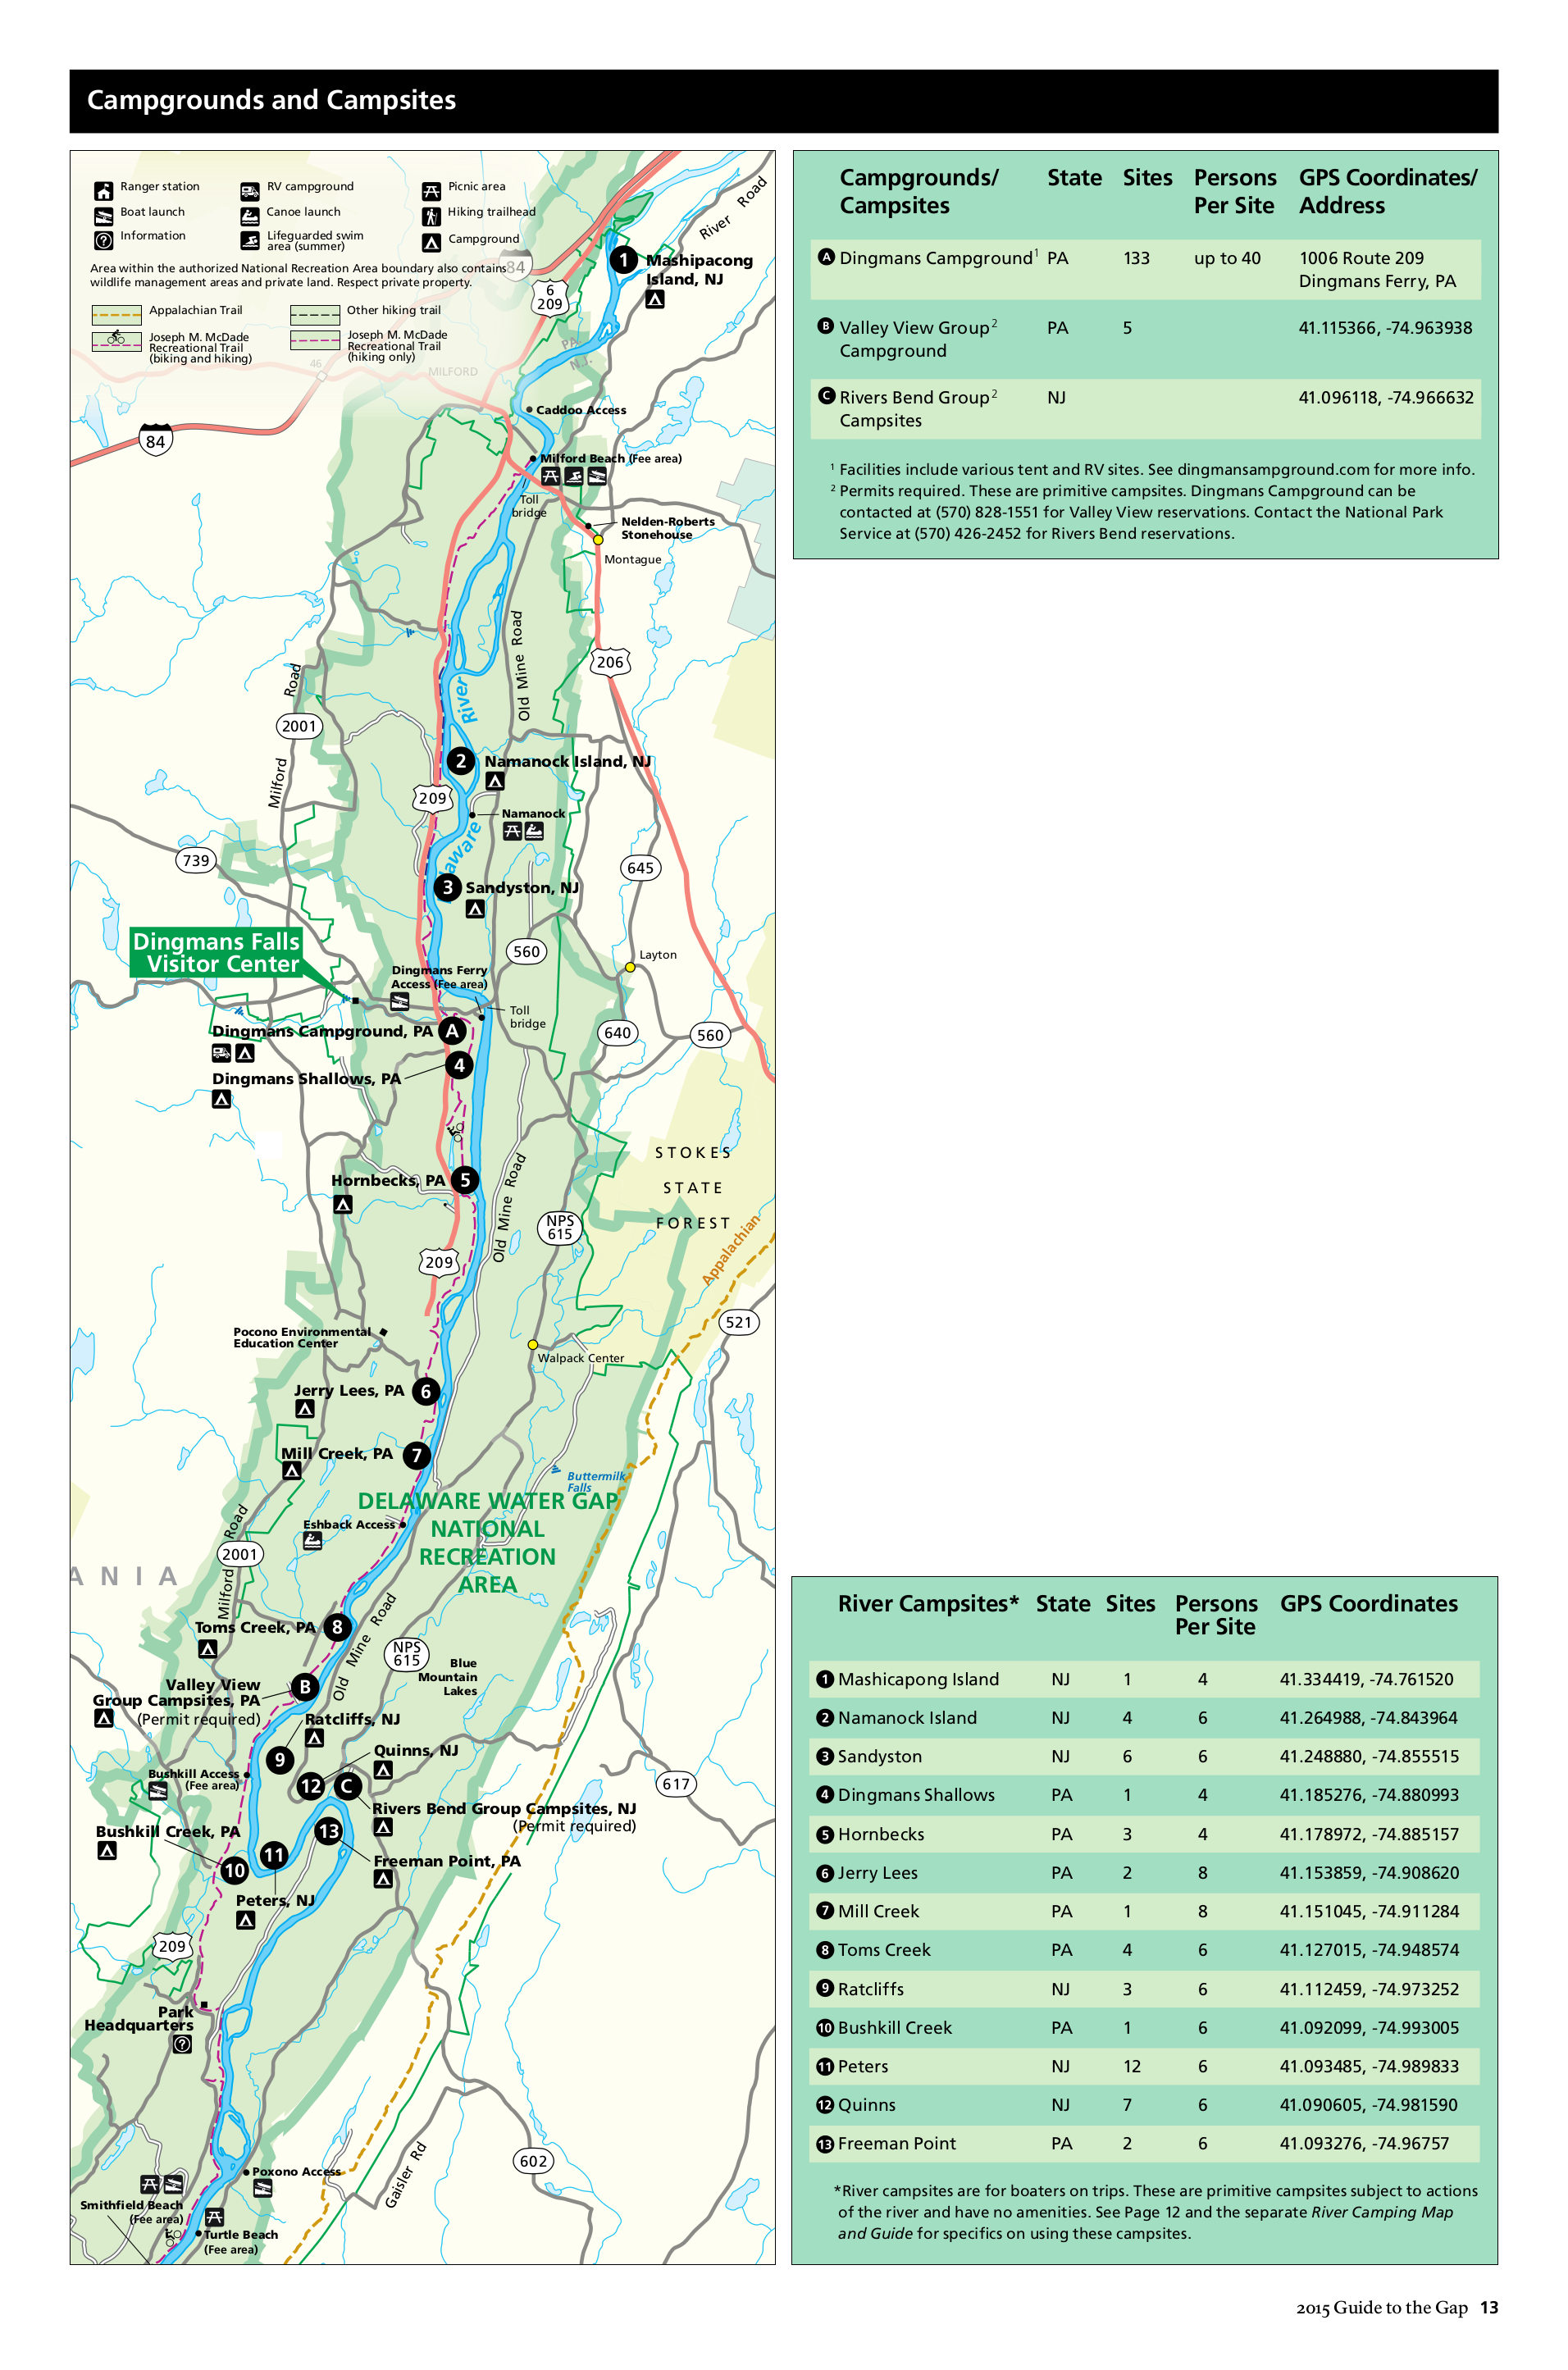 delaware water gap national recreation area map File Nps Delaware Water Gap Camping Map Jpg Wikimedia Commons delaware water gap national recreation area map